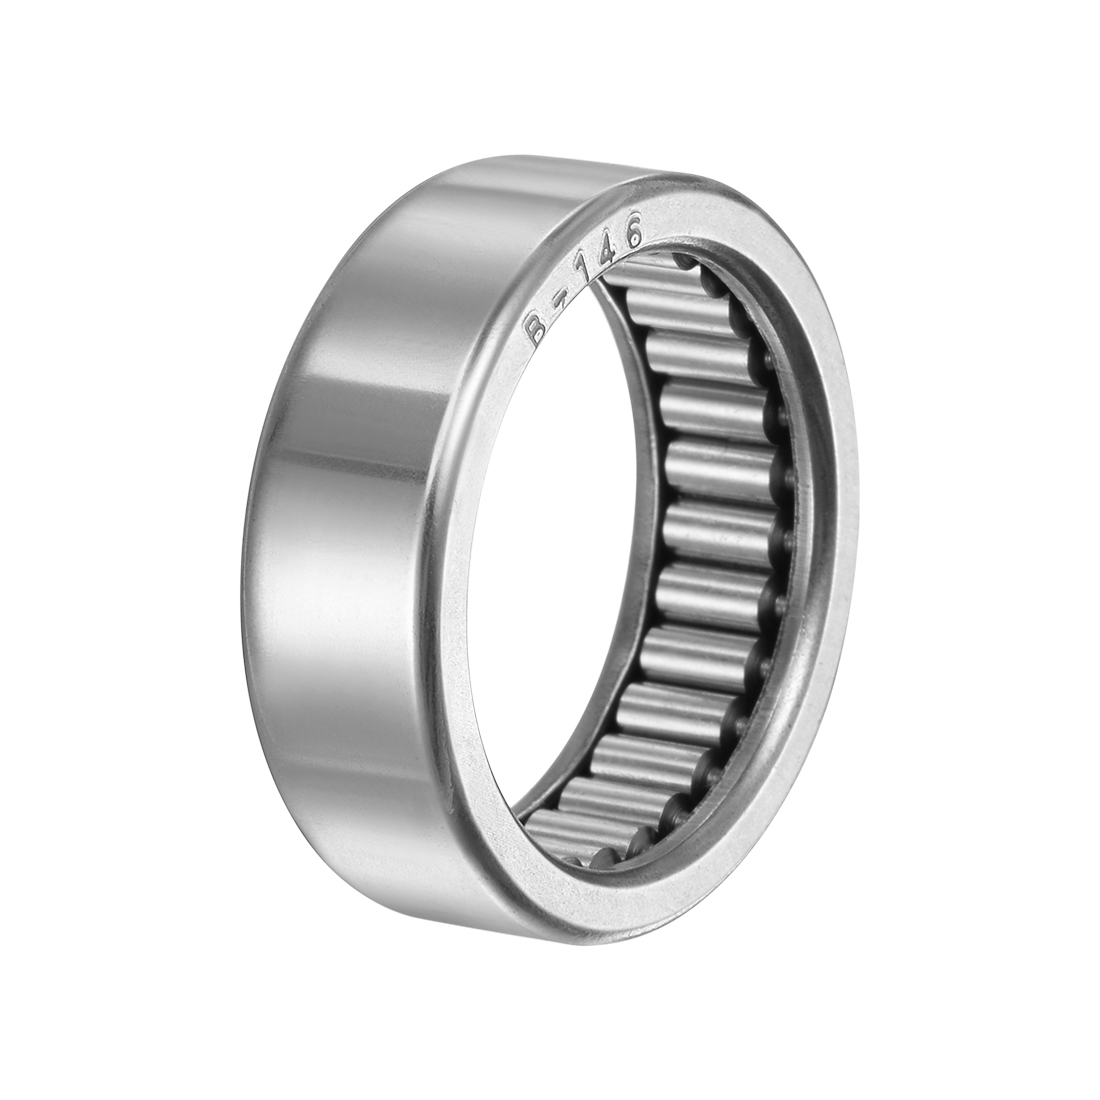 """B146 Needle Roller Bearings 7/8"""" x 1-1/8"""" x 3/8"""" Full Complement Drawn Cup"""